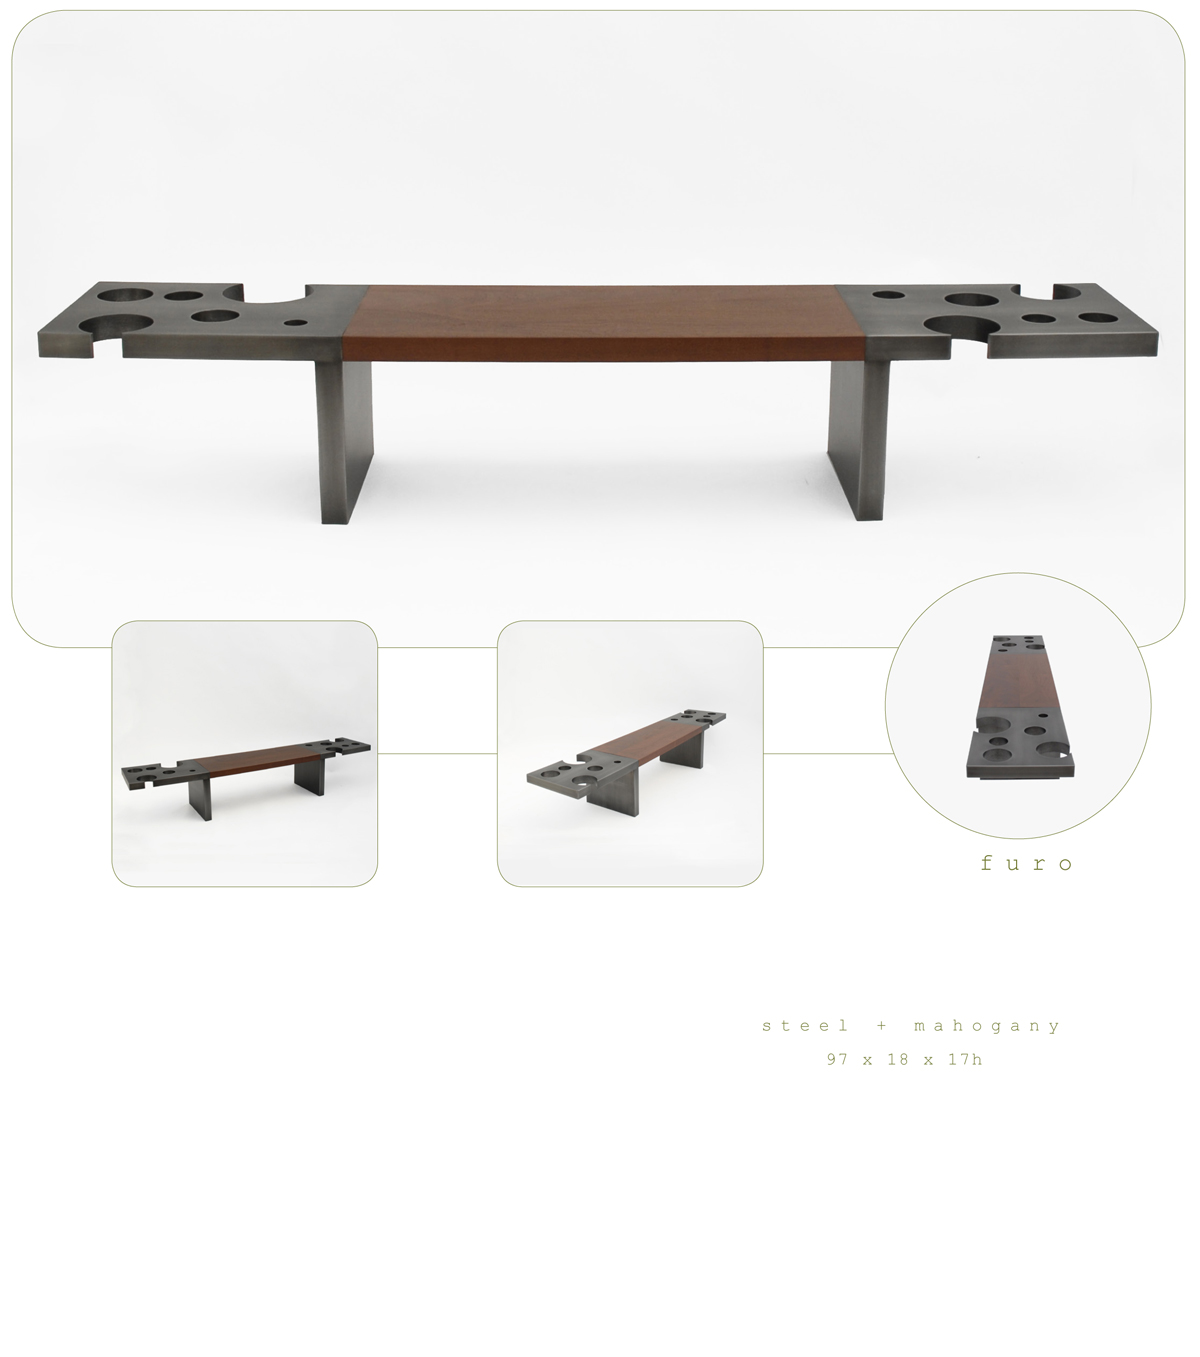 Furo is contemporary bench made out of steel and mahogany measuring 97 x 18 x 17 inches made by Chad Manley Design.